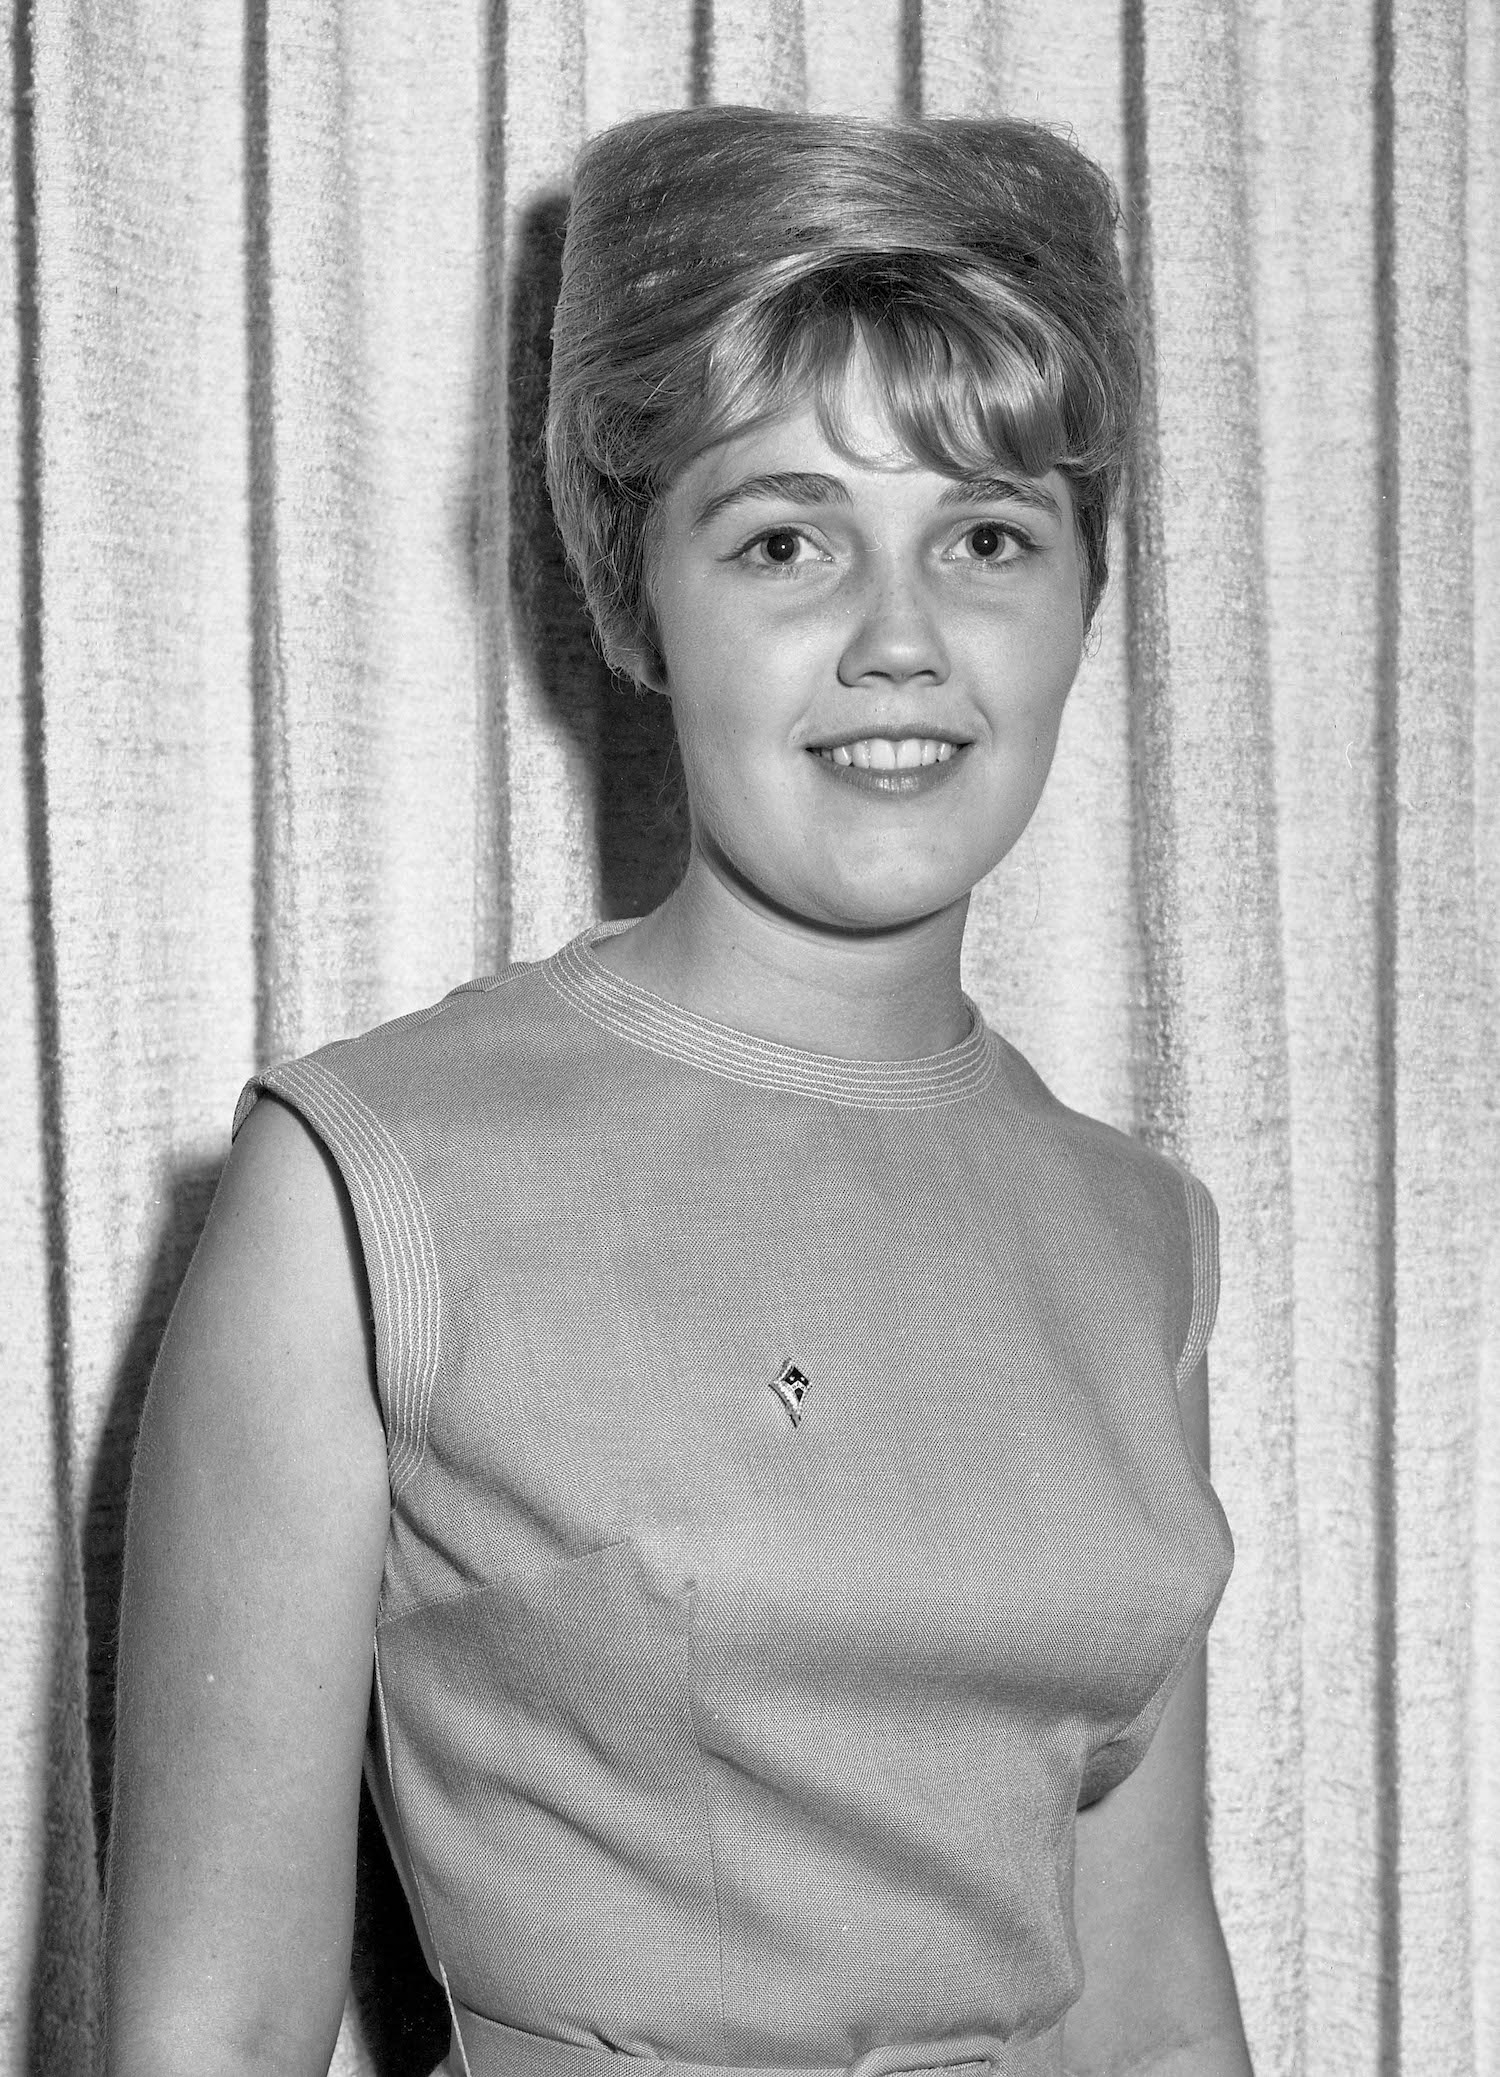 Kathy at spring social, Fresno State College, 1964